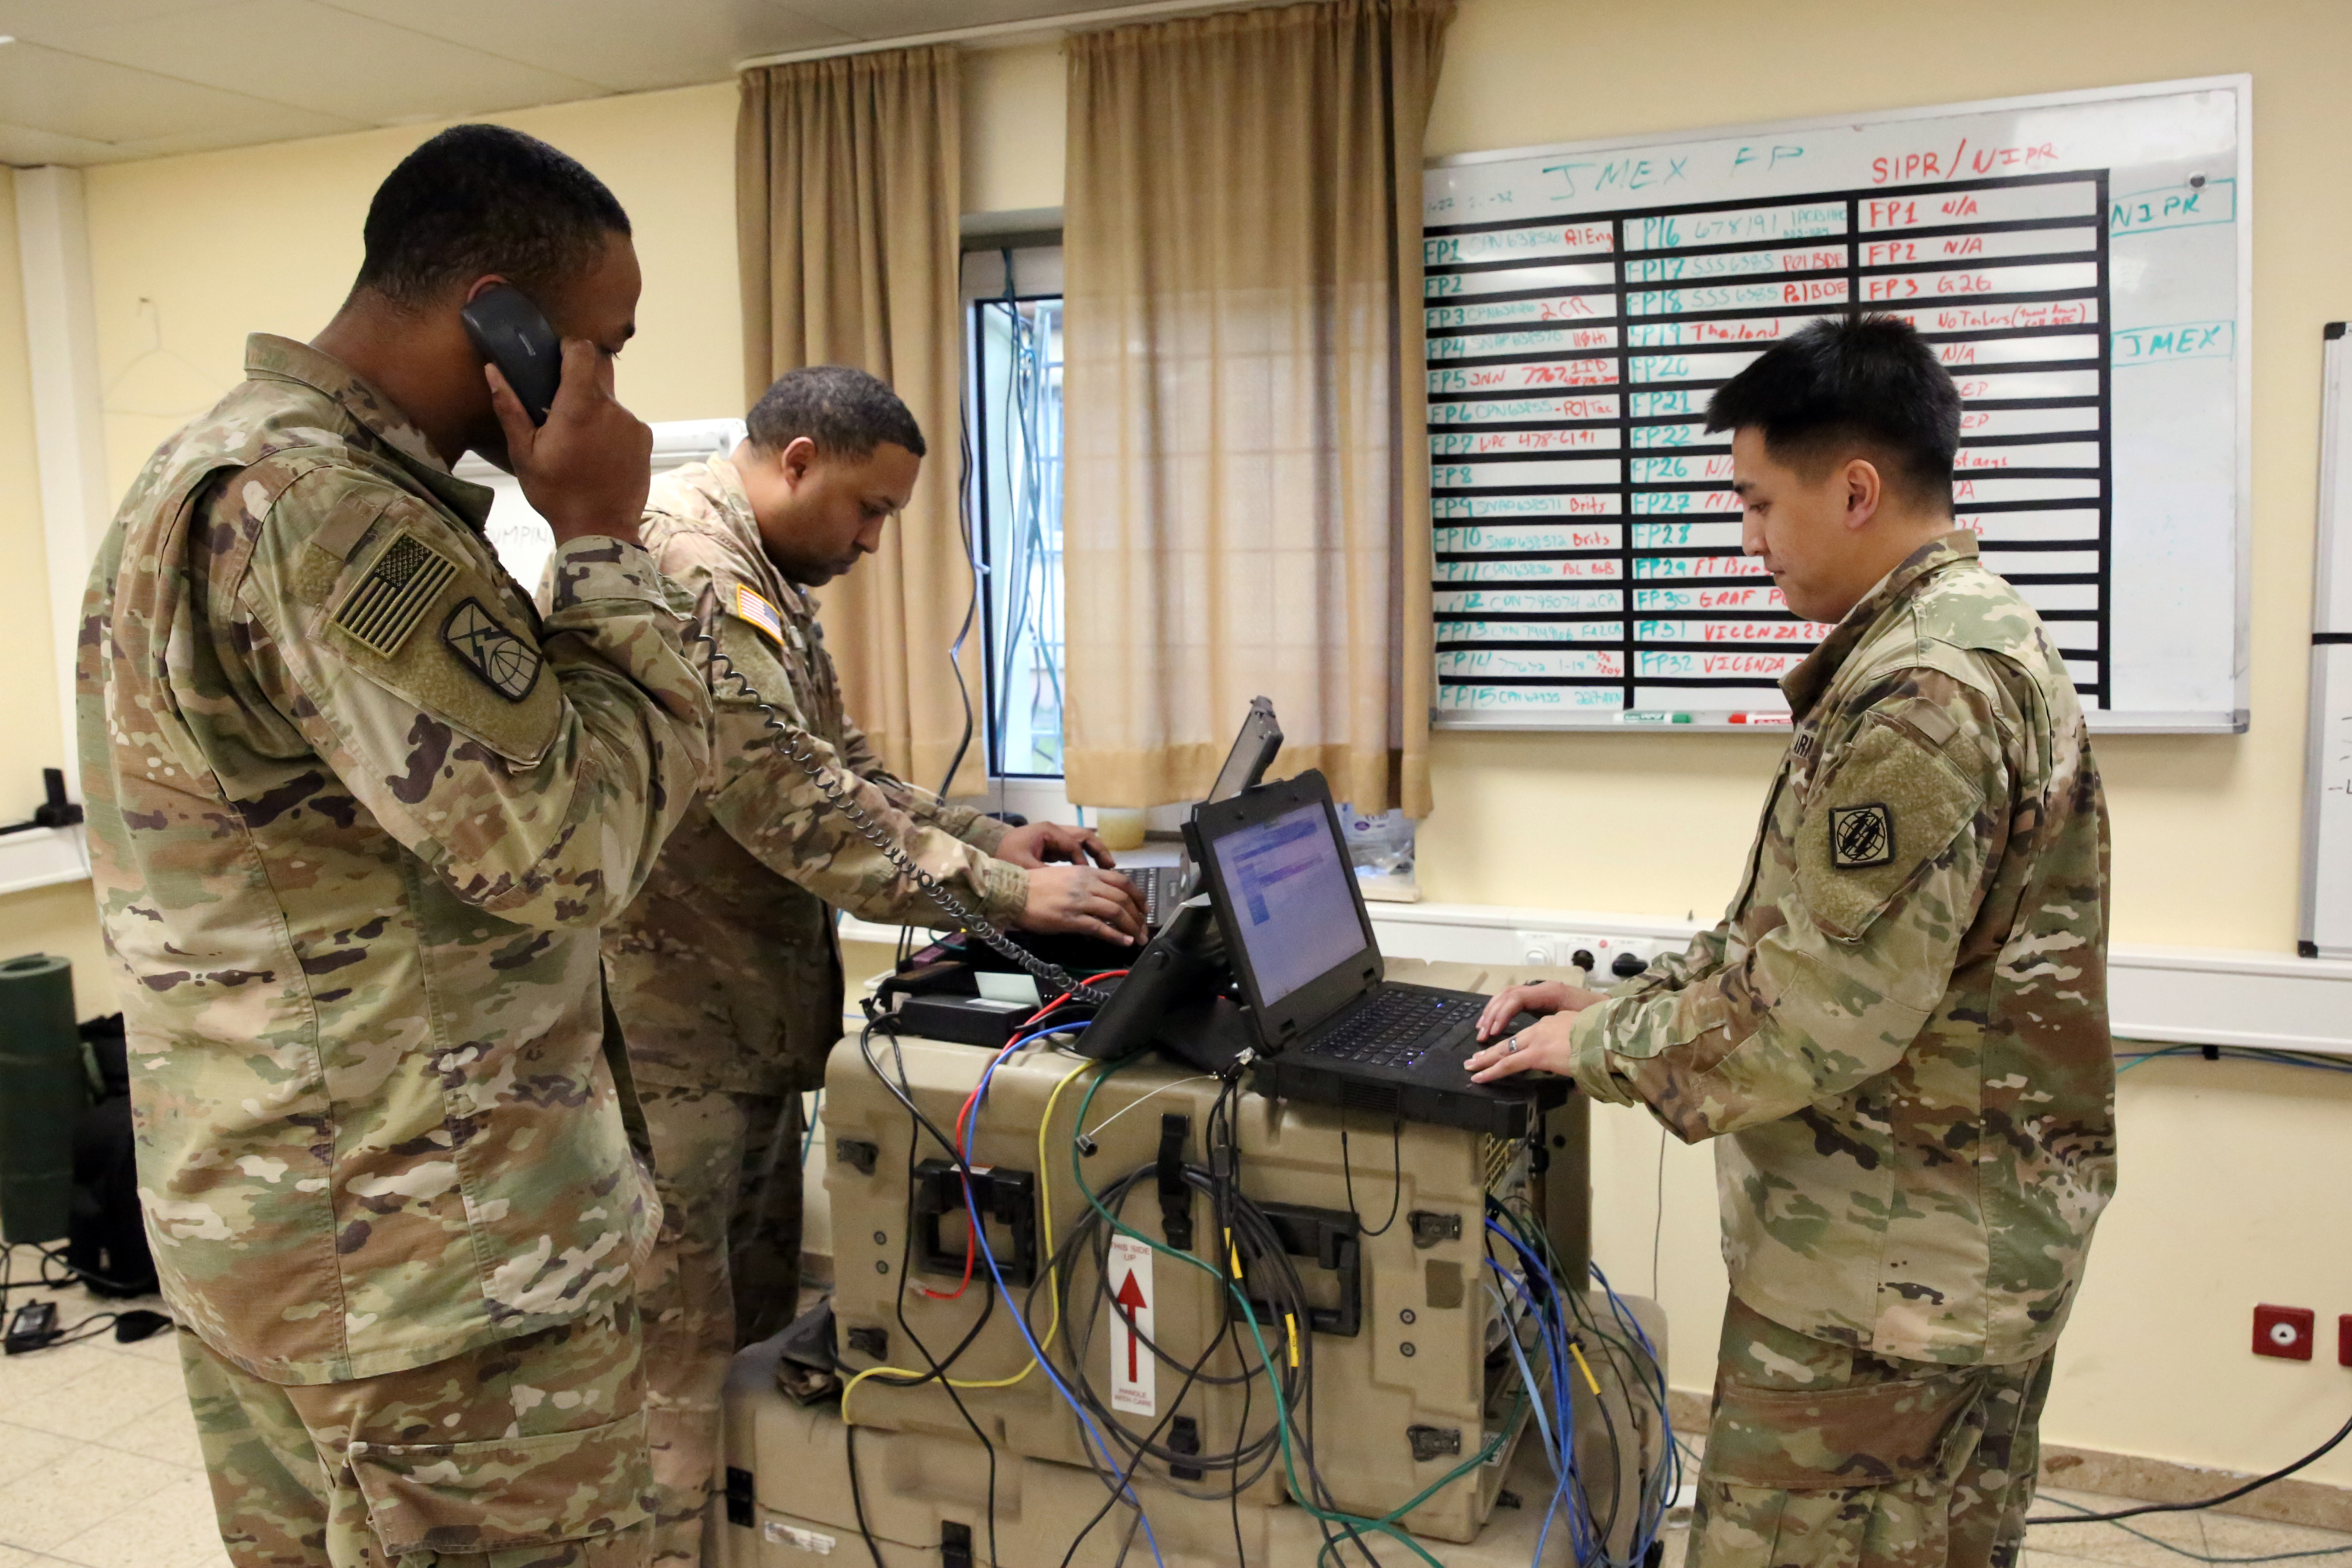 U.S. Army 1st Lt. Shaun Lawson, Cpl. Marvin Carson and Sgt. John Delgado, assigned to Charlie Company, 44th Expeditionary Signal Battalion, 2nd Theater Signal Brigade, manage the company network operations (NETOPS) cell monitoring the networks at exercise Allied Spirit VIII, Jan. 30, 2018 at the Hohenfels Training Area, Germany. (U.S. Army photo by William B. King)